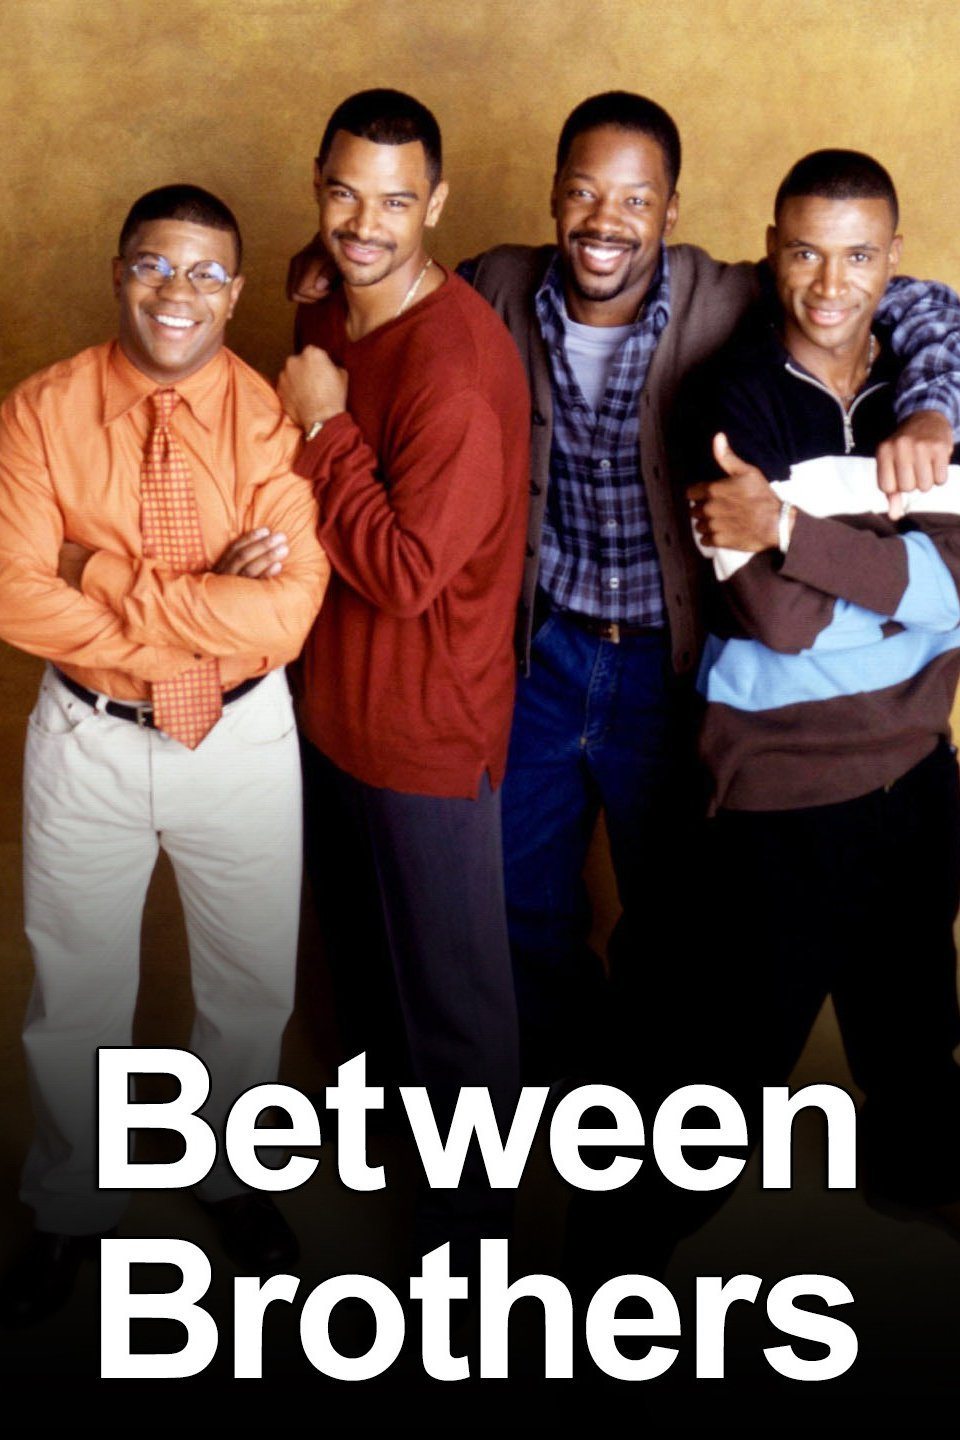 Tommy Davidson, Kadeem Hardison, Kelly Perine, and Dondré T. Whitfield in Between Brothers (1997)